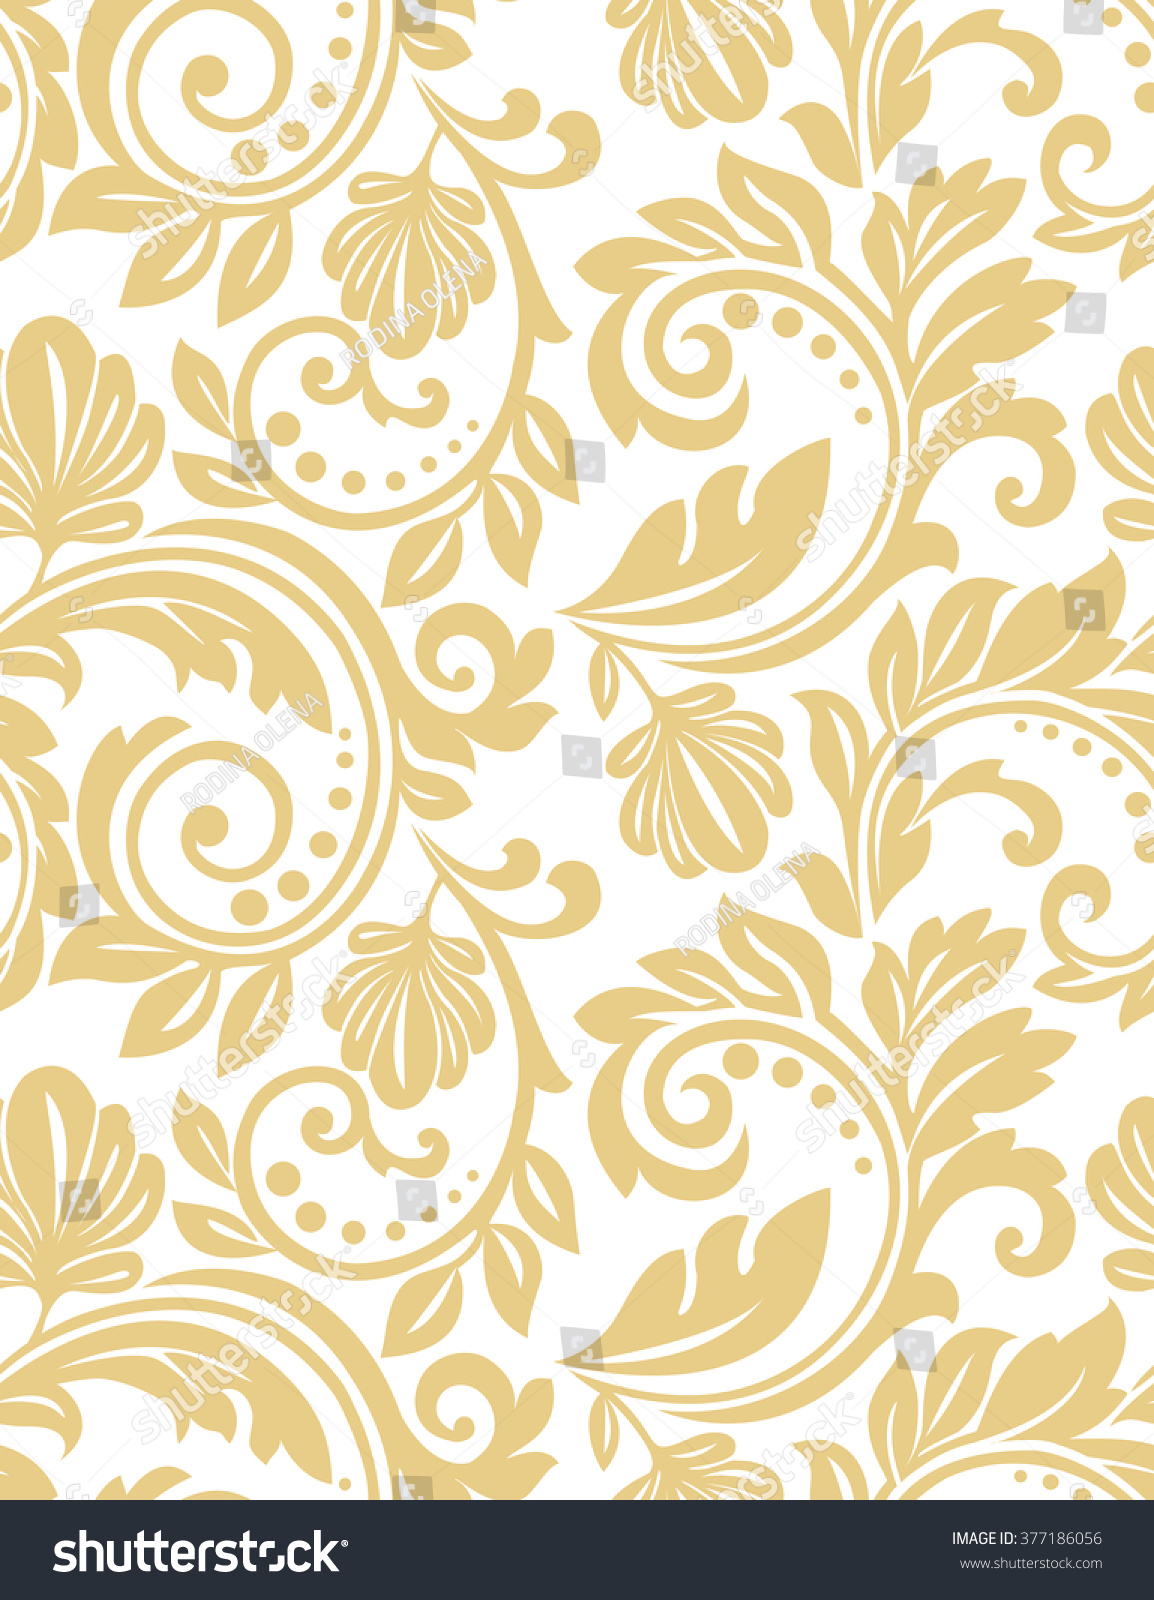 white and gold floral wallpaper - photo #24